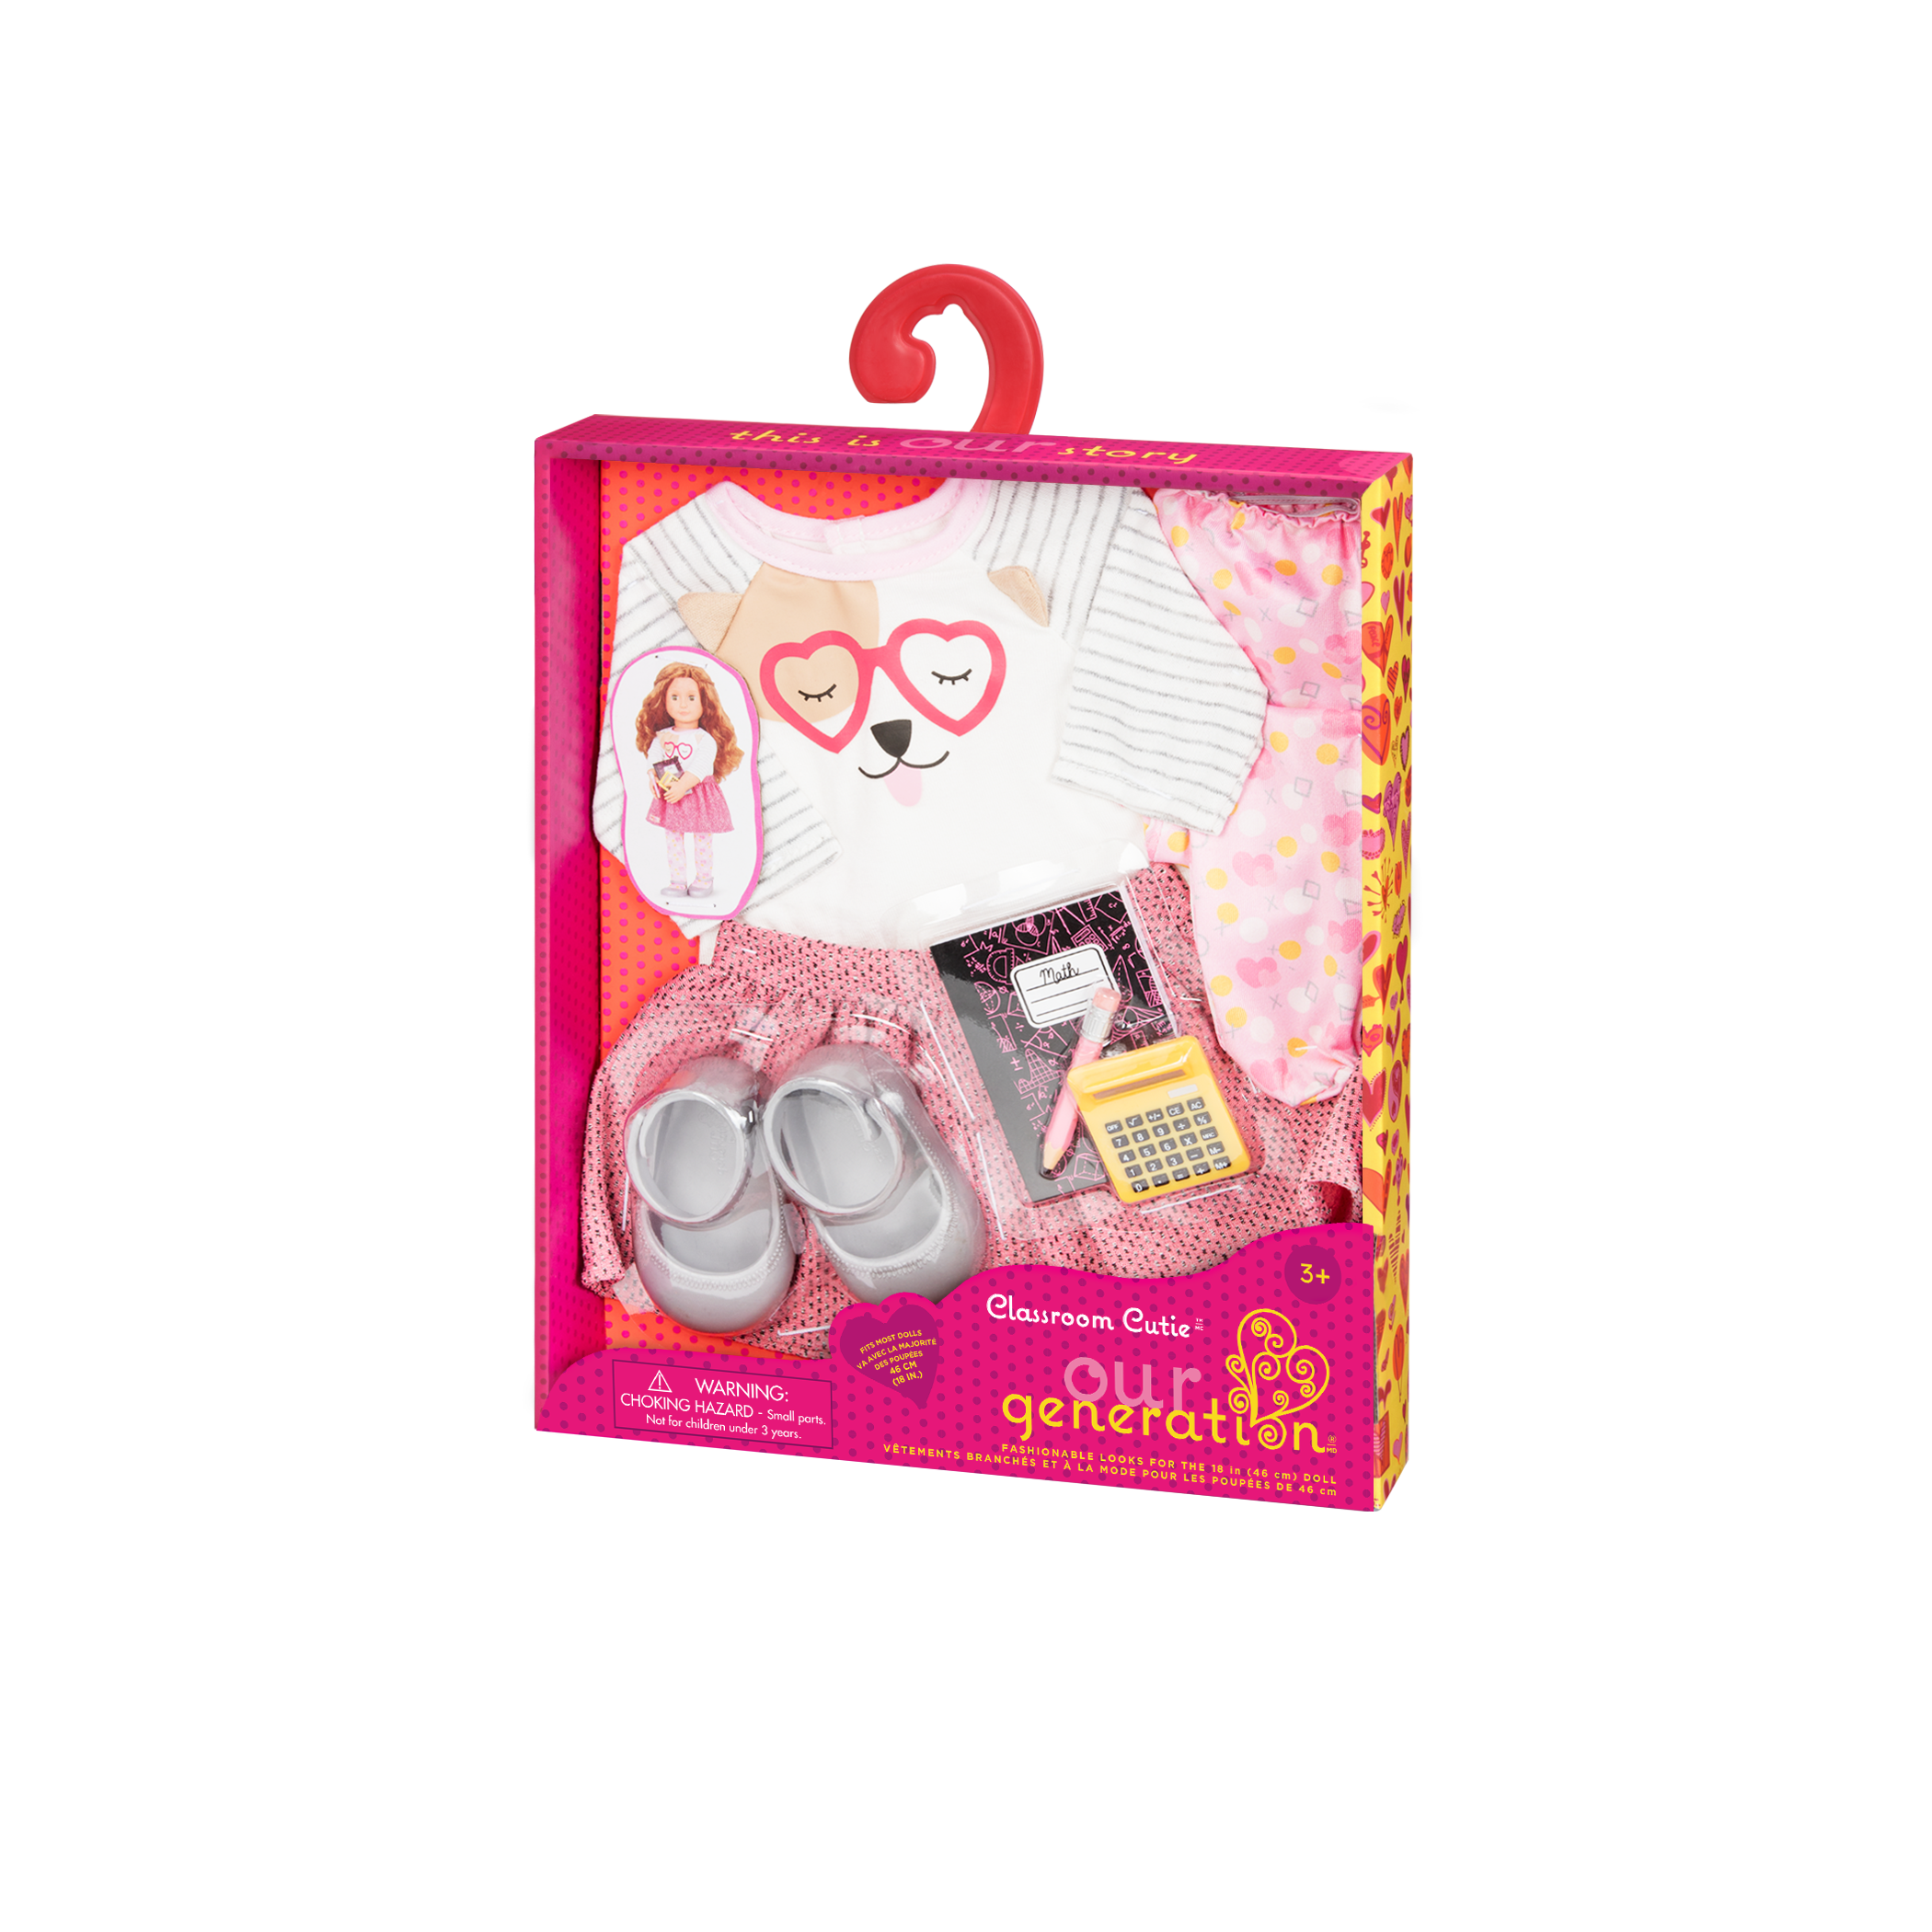 Classroom Cutie - 18-inch Doll outfit in packaging